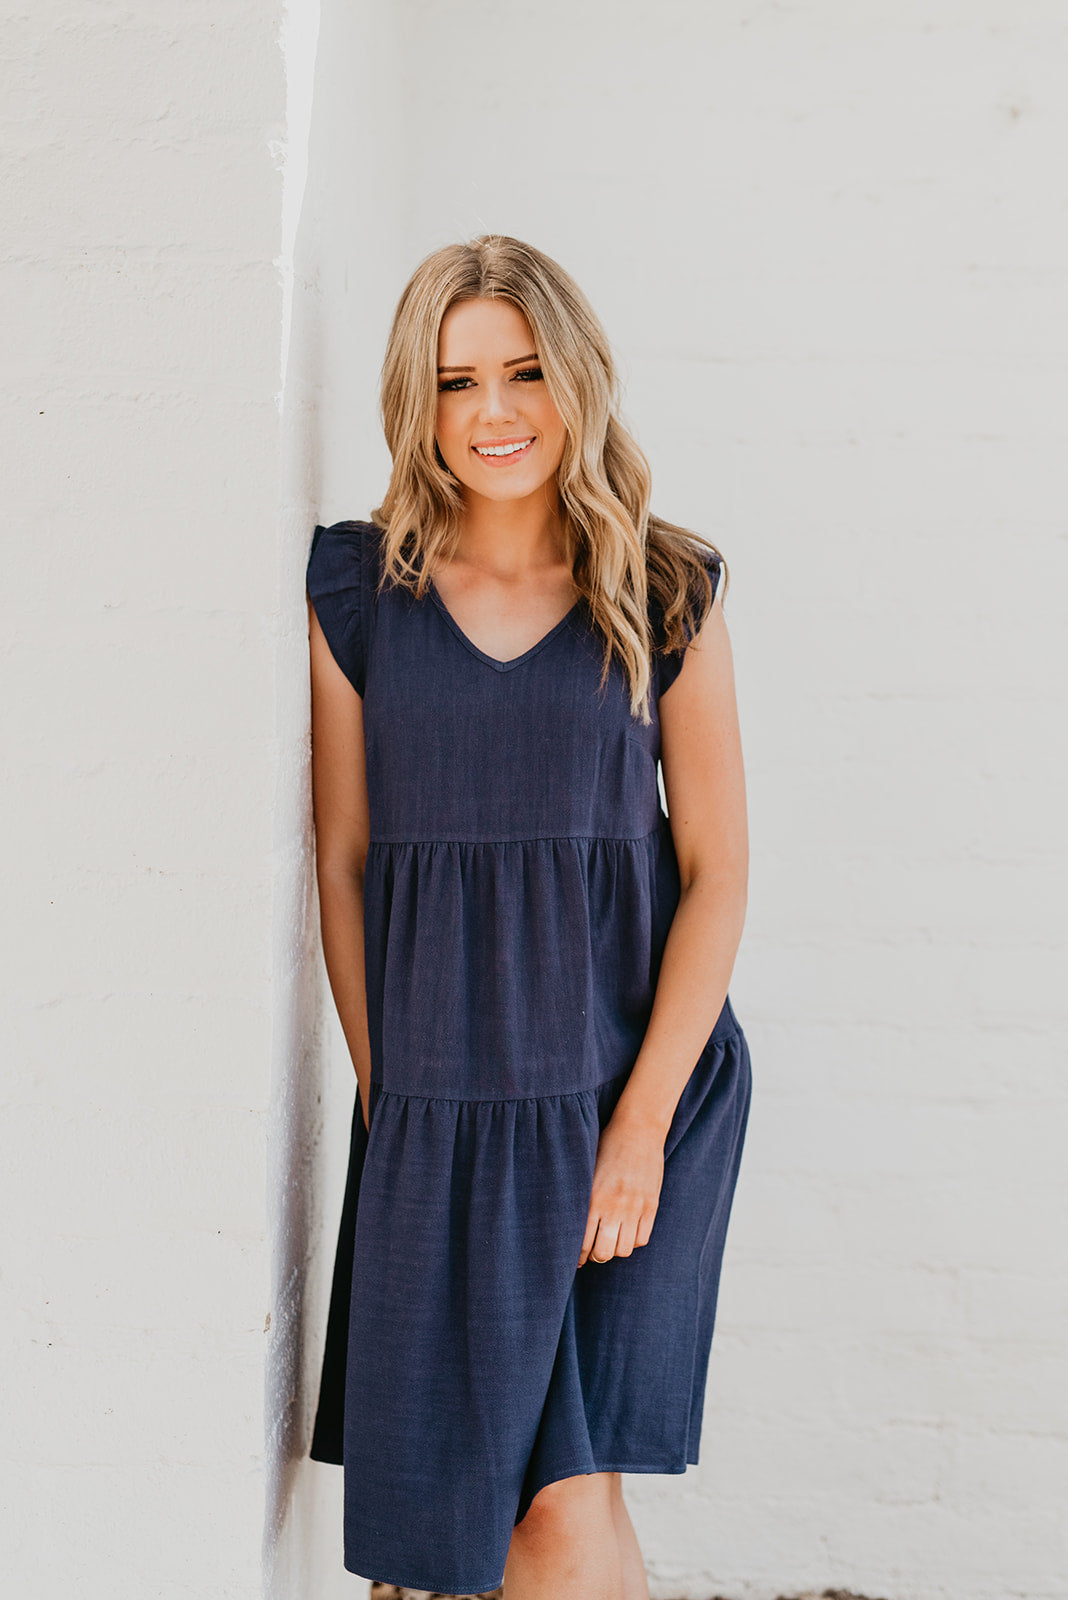 THE SCARLETT TIERED MIDI DRESS IN NAVY